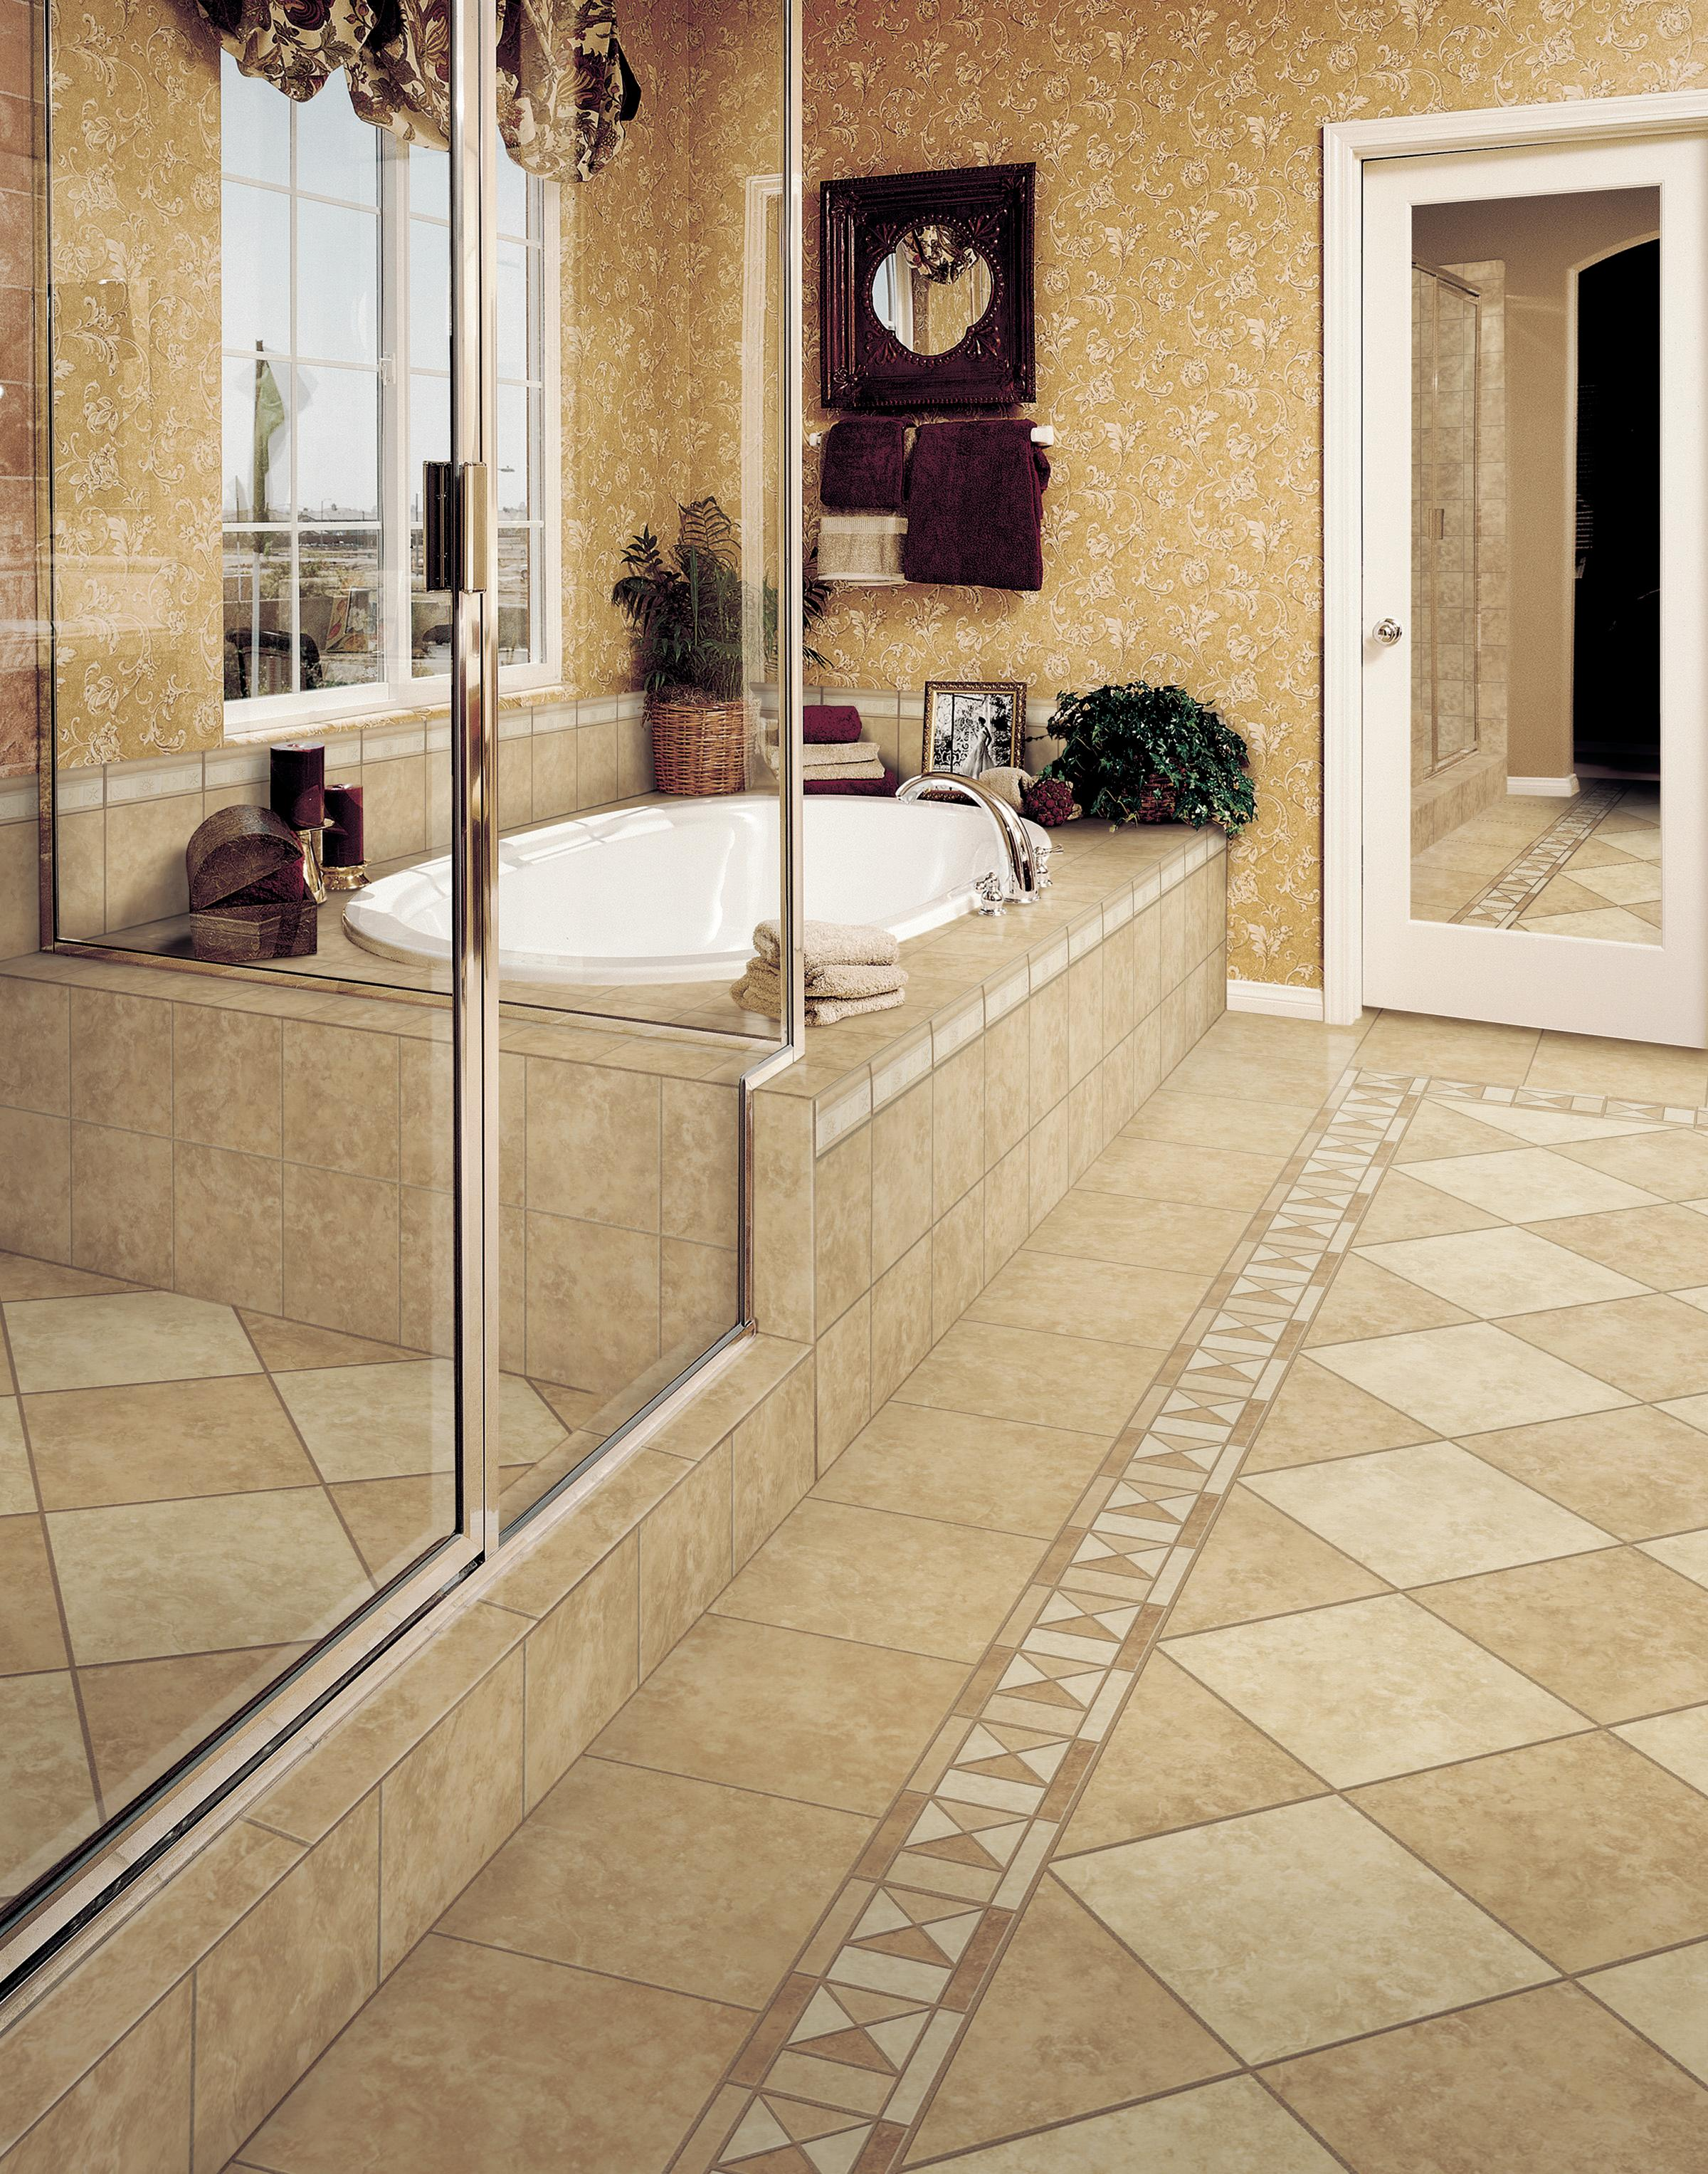 Amazing Floor Covering Brokers 1794 Barlow St Located At The Corner Of South  Airport And Barlow Road In Traverse City. Traverse City, MI  Tile Ceramic Contractors ...